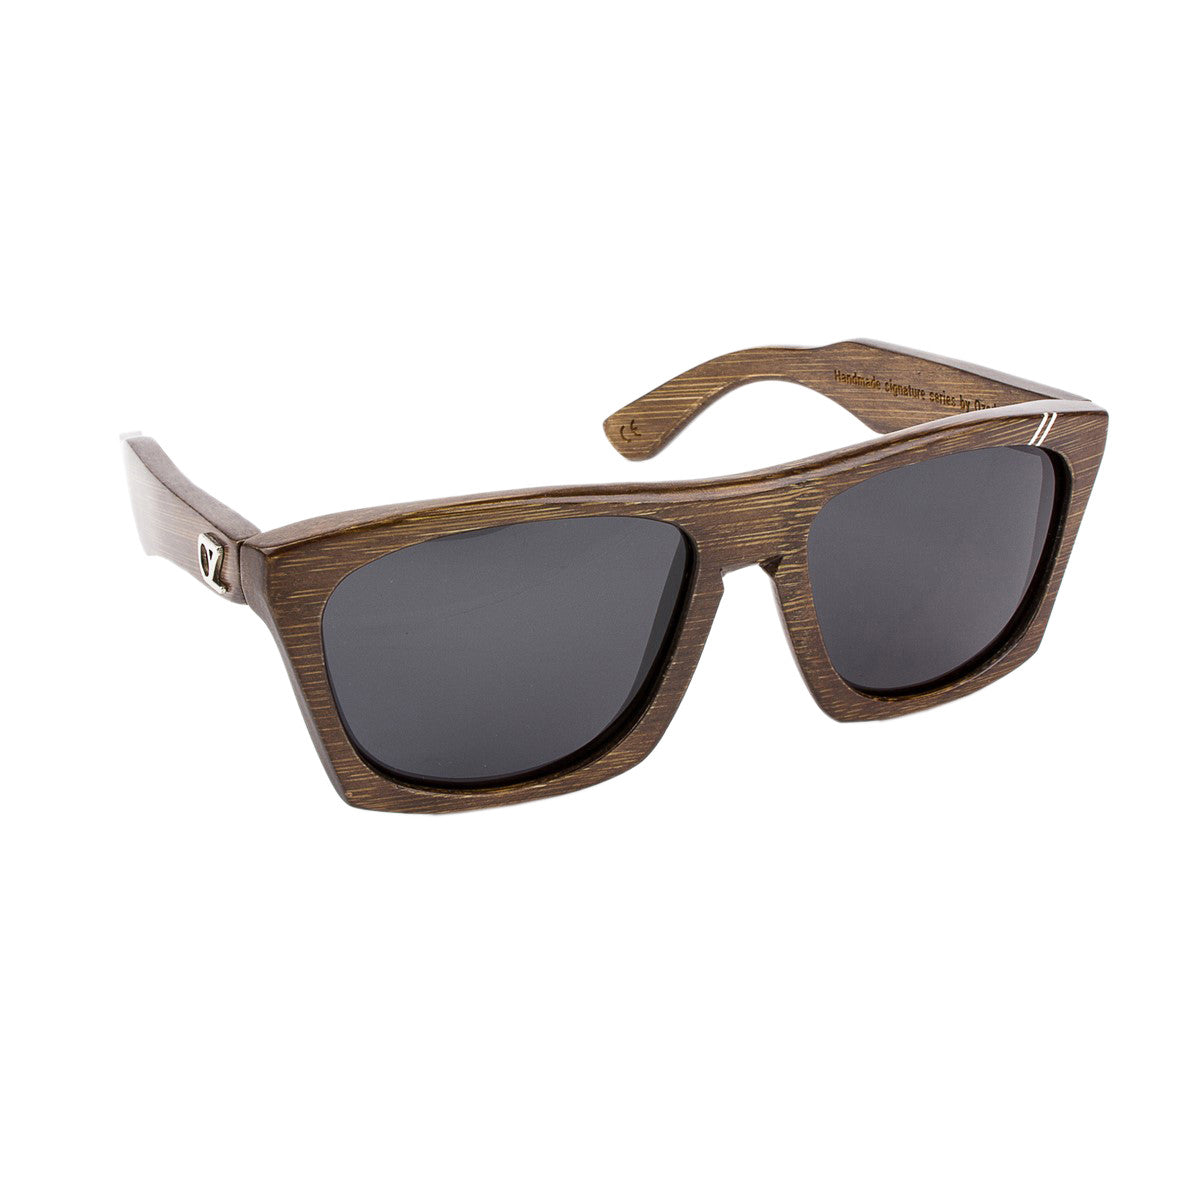 Wooden sunglasses Shred it